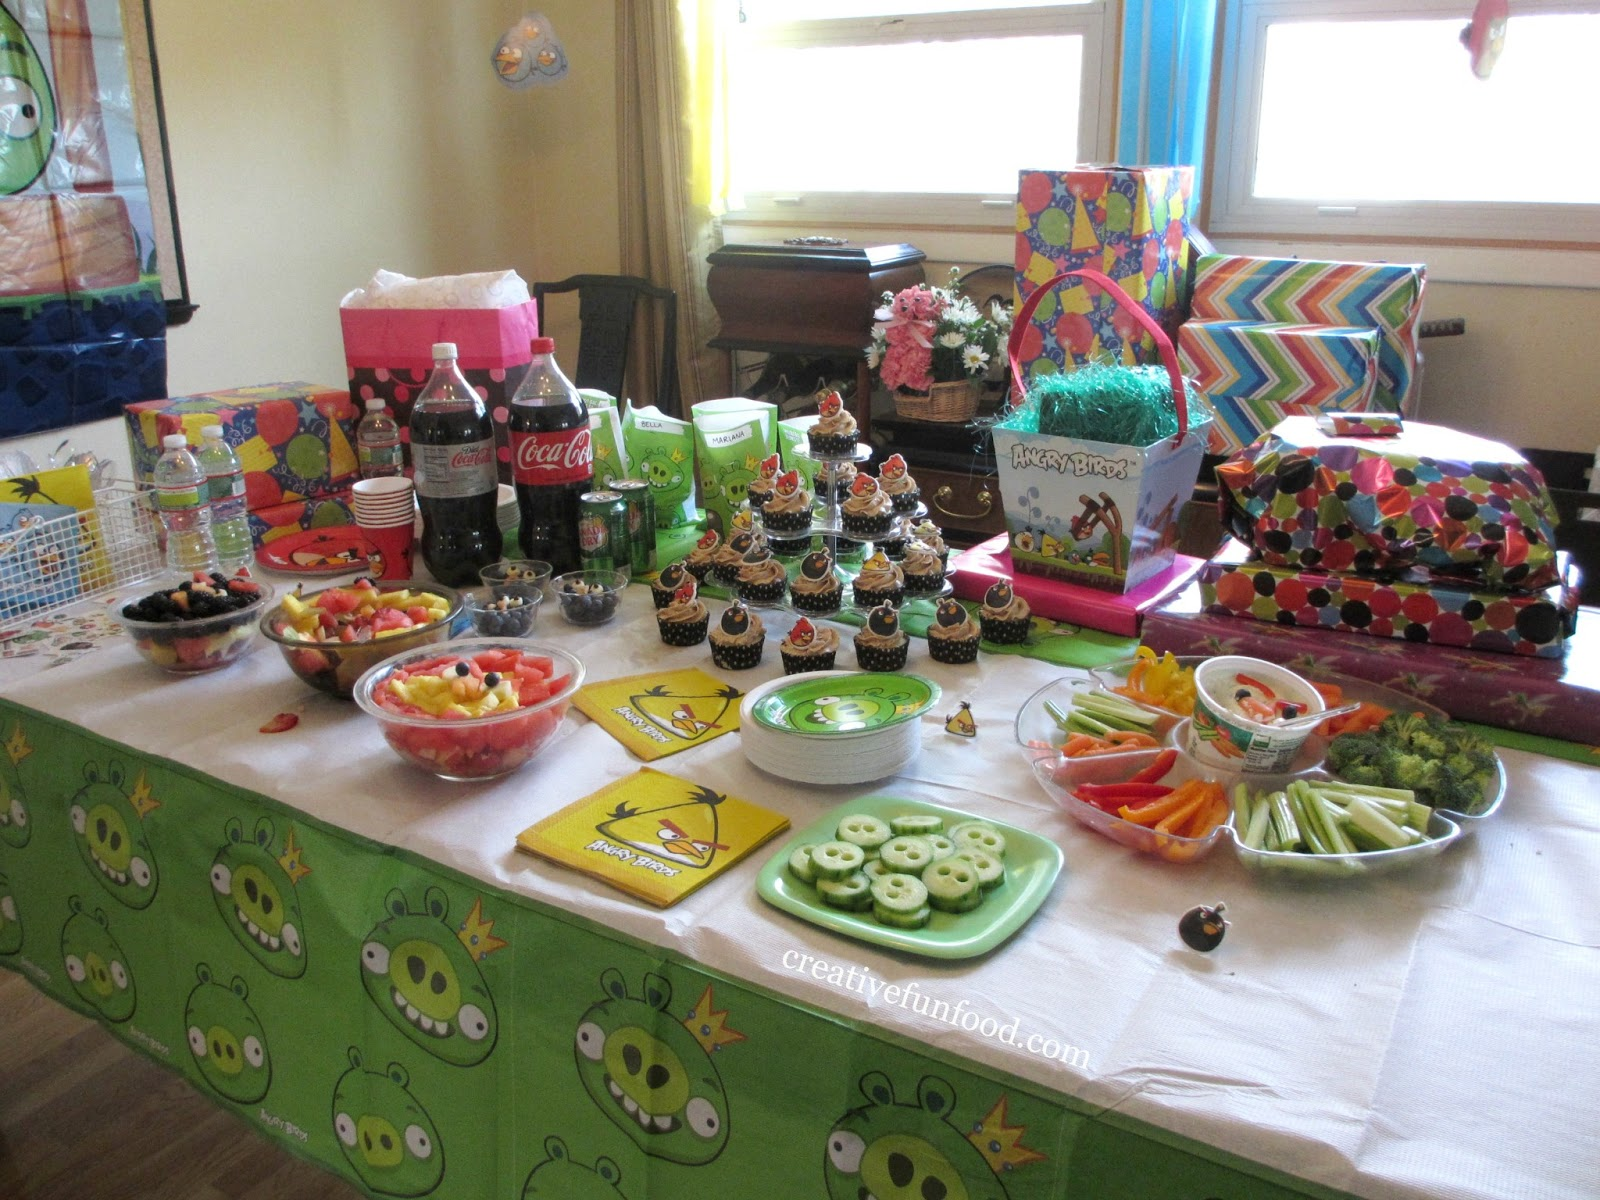 Kids Dinner Party Ideas Part - 18: Creative Food Angry Birds Birthday Party Ideas